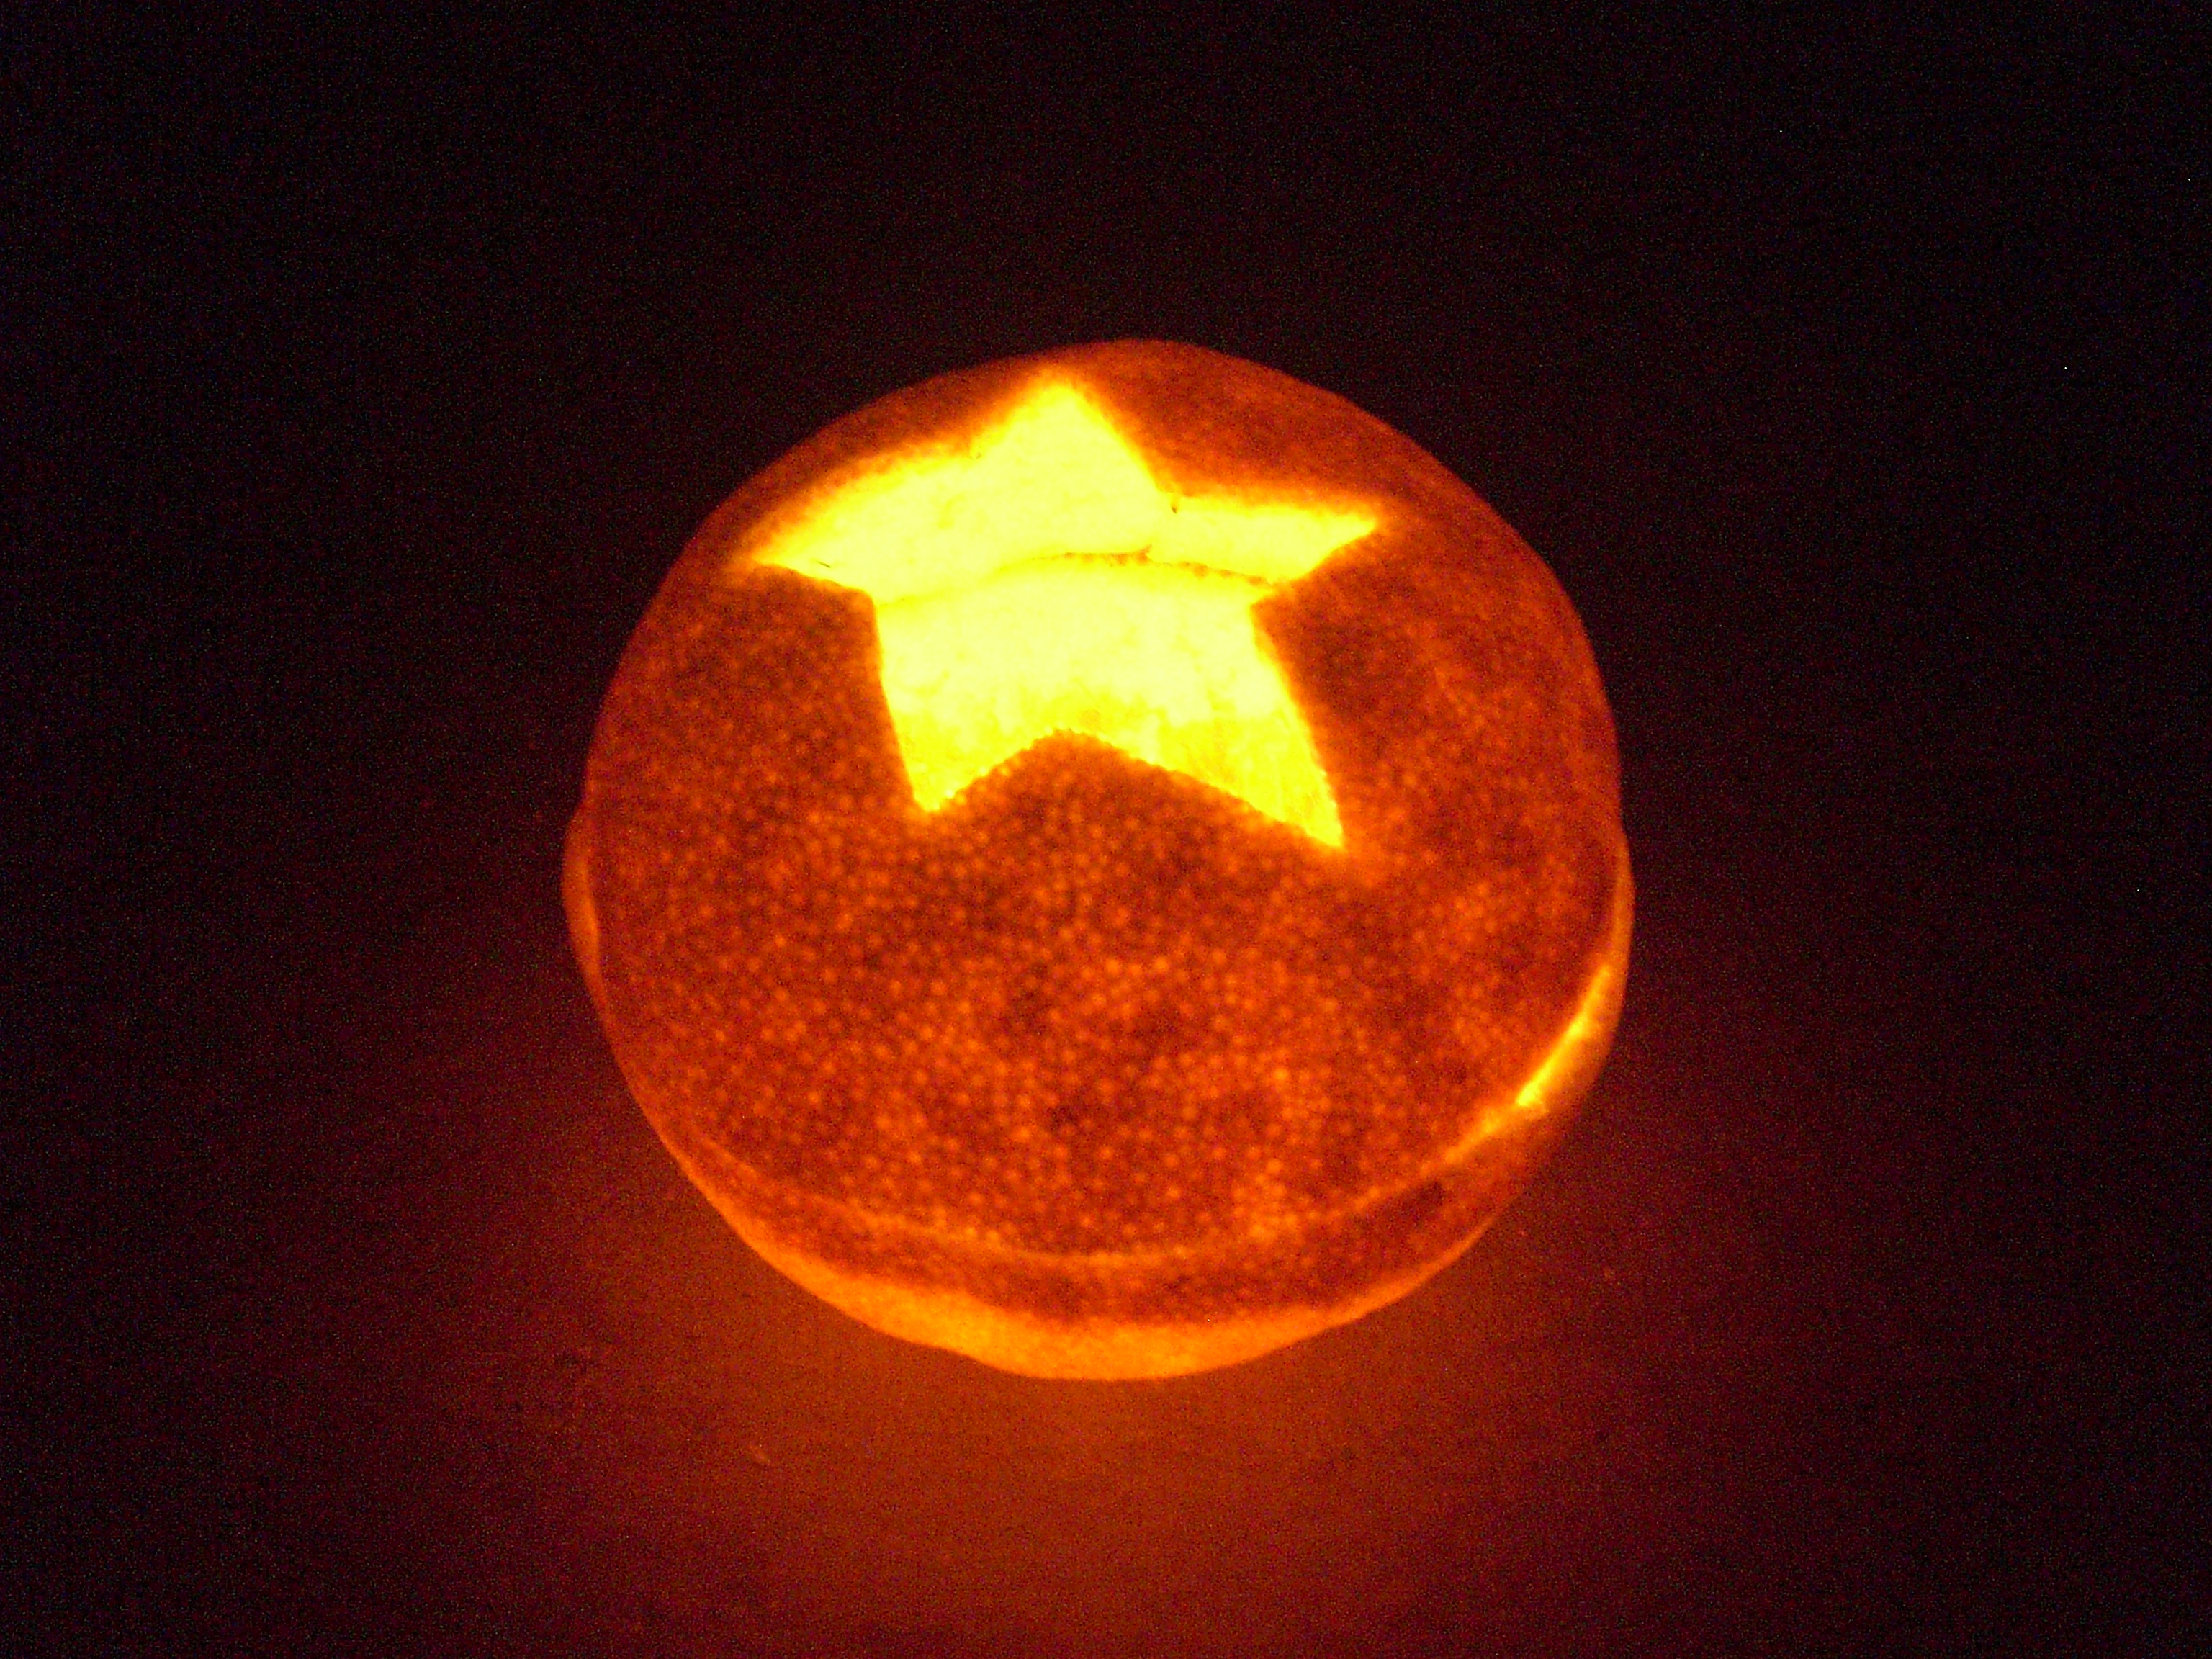 Tangerine (Satsuma, Clementine) Candle